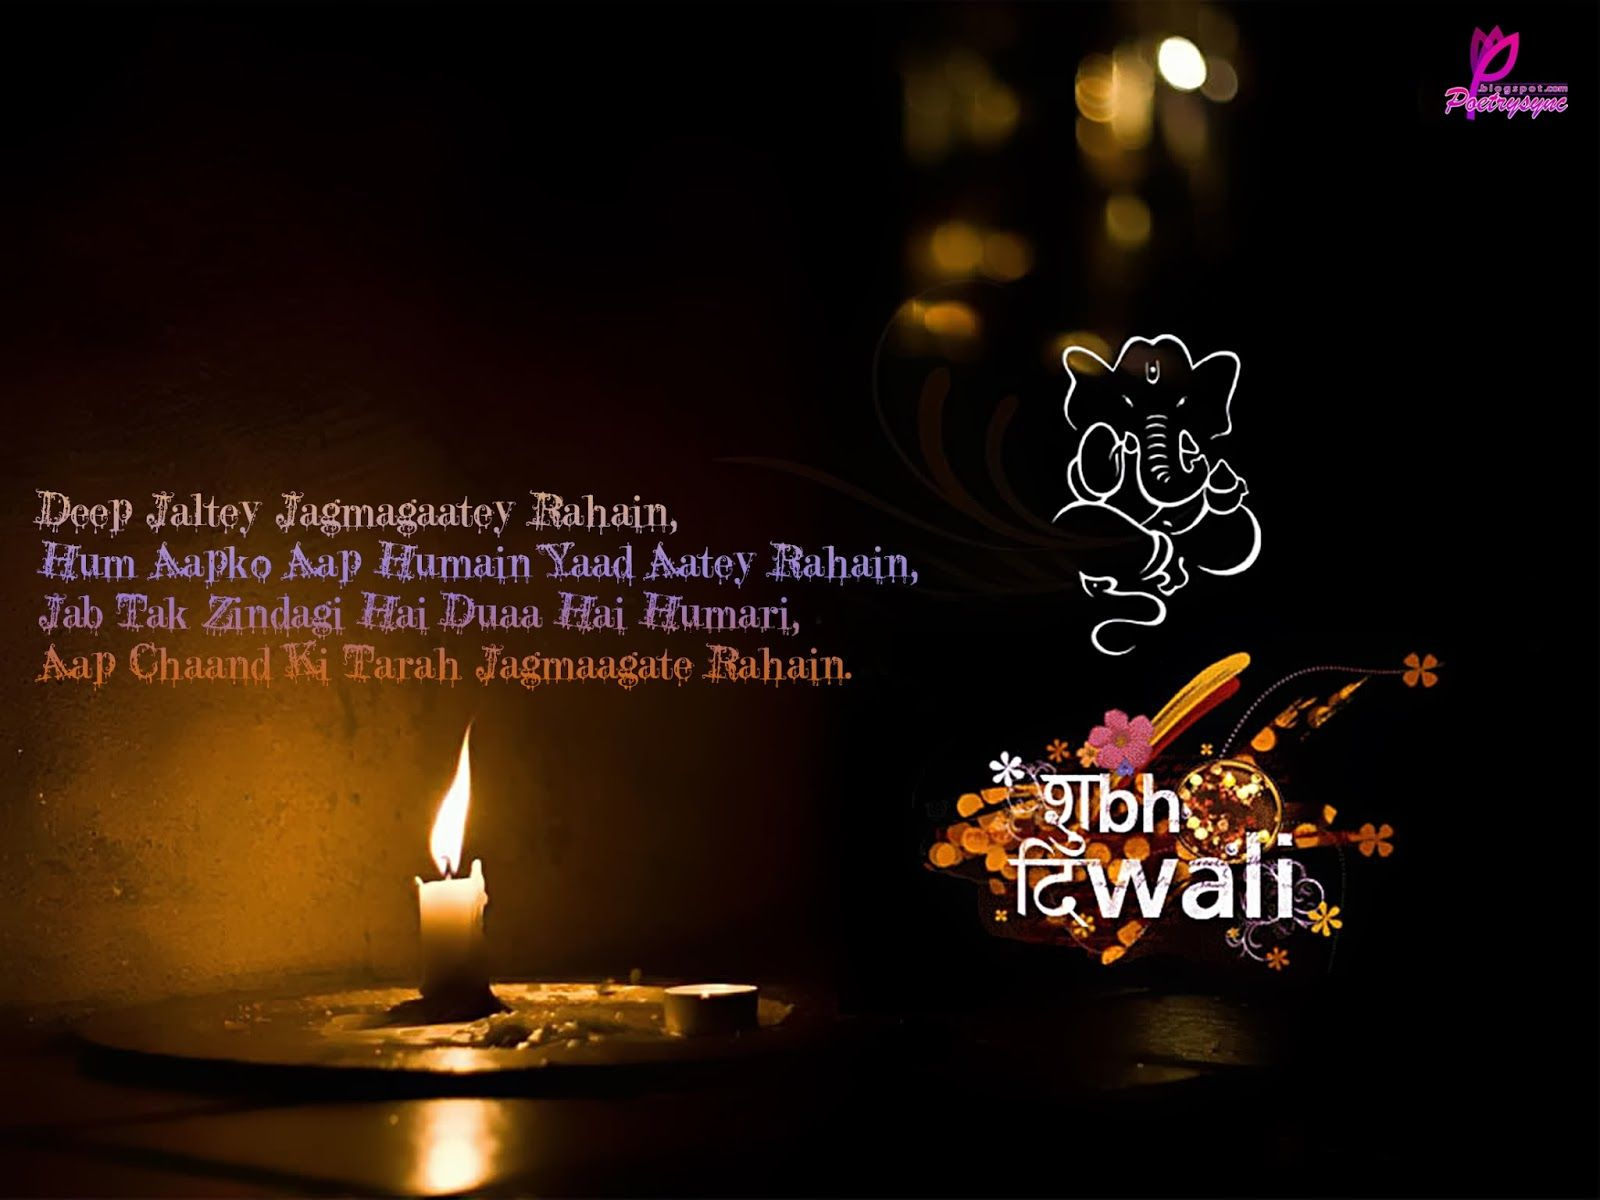 Happy diwali wishes wallpaper and sms pictures special diwali happy diwali wishes wallpaper and sms pictures kristyandbryce Image collections